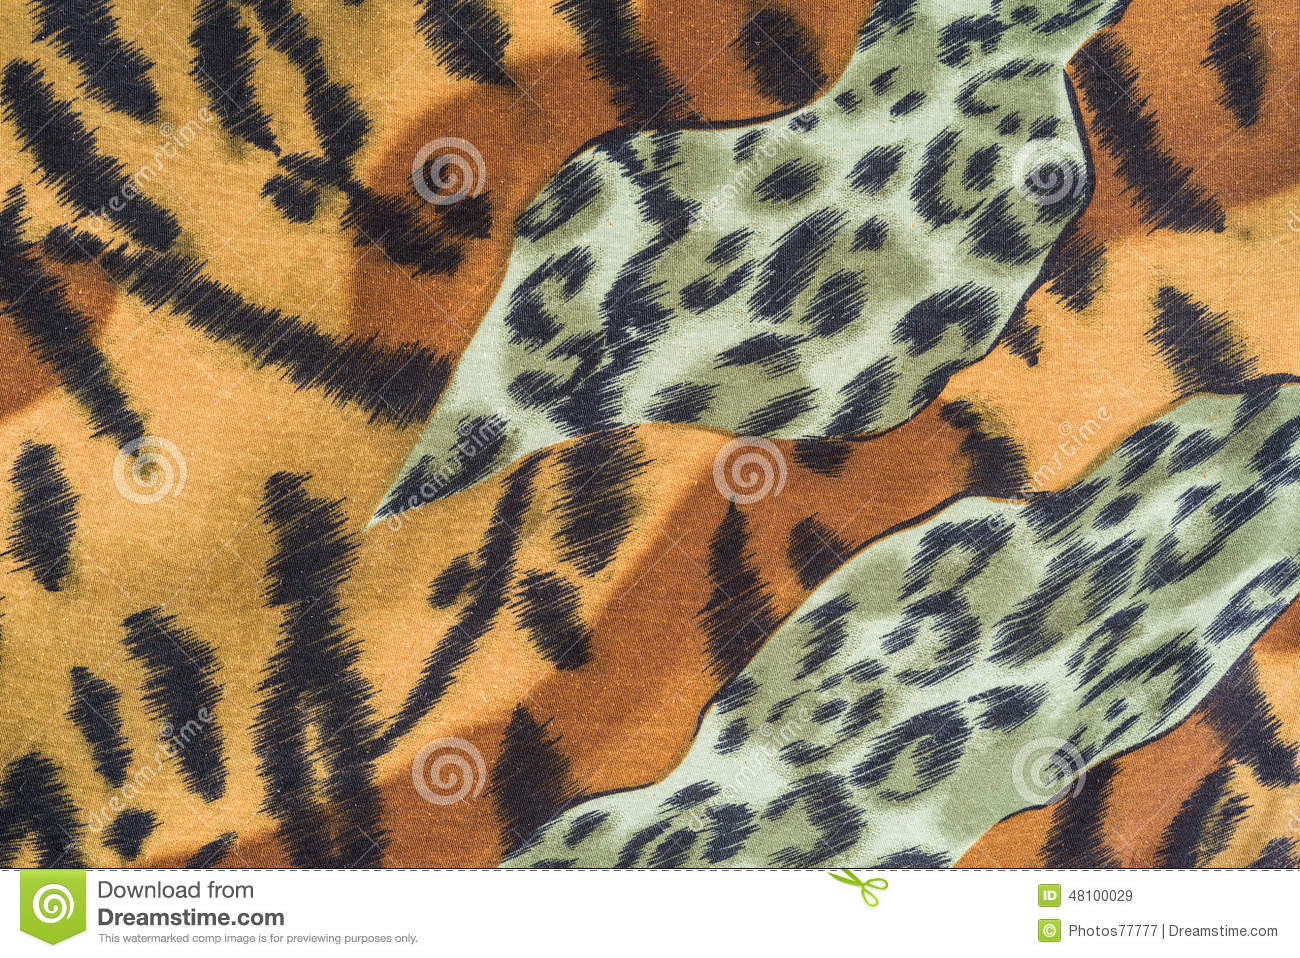 Texture of tiger striped fabric